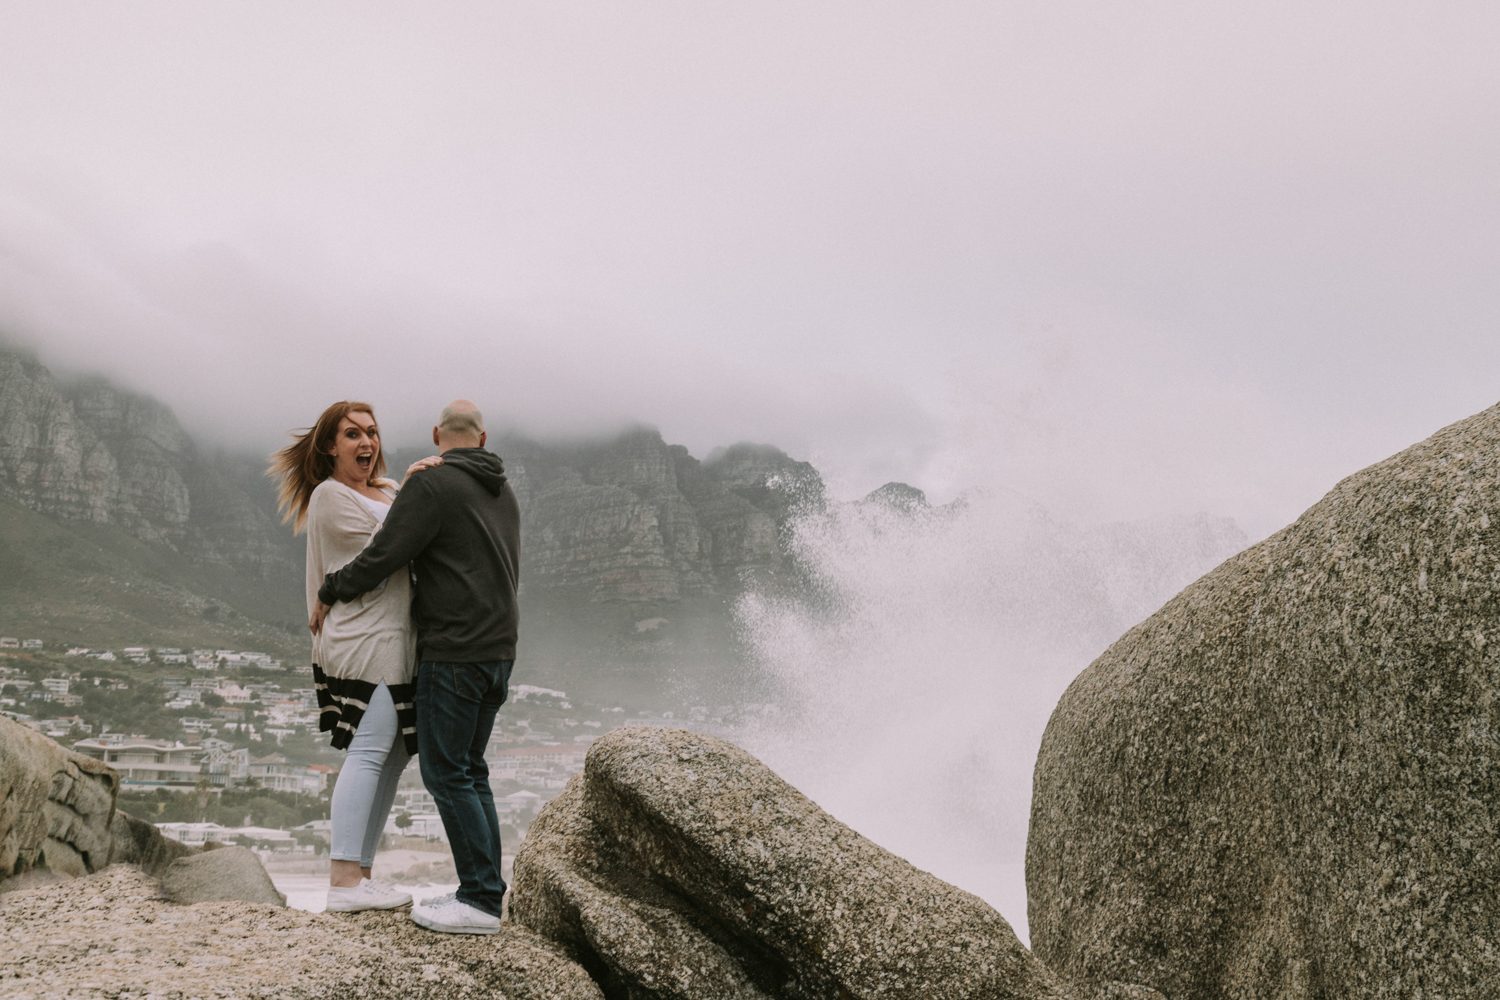 Enagagement photography Cape Town- Bianca Asher Photography-28.jpg